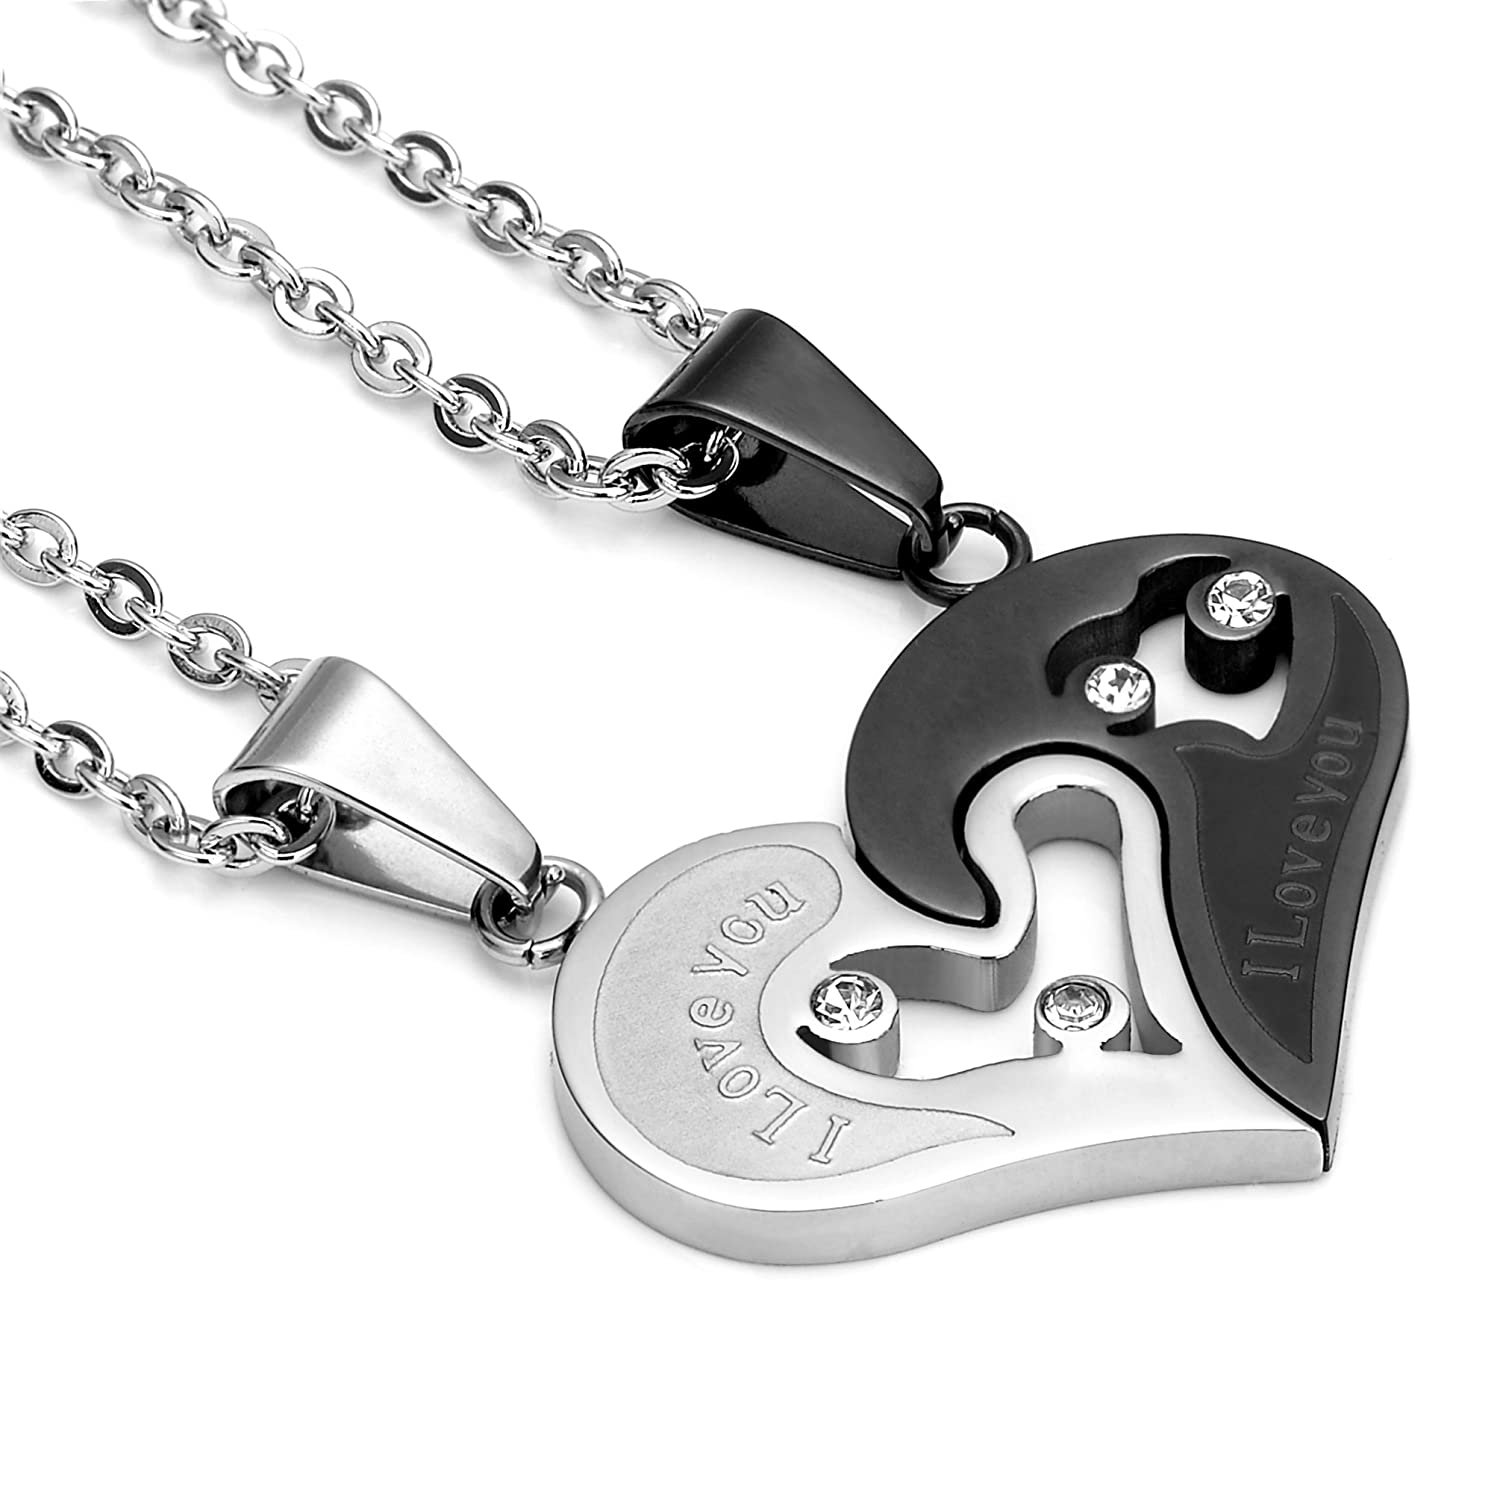 Jstyle stainless steel mens womens couple necklace pendant love jstyle stainless steel mens womens couple necklace pendant love heart cz puzzle matching amazon aloadofball